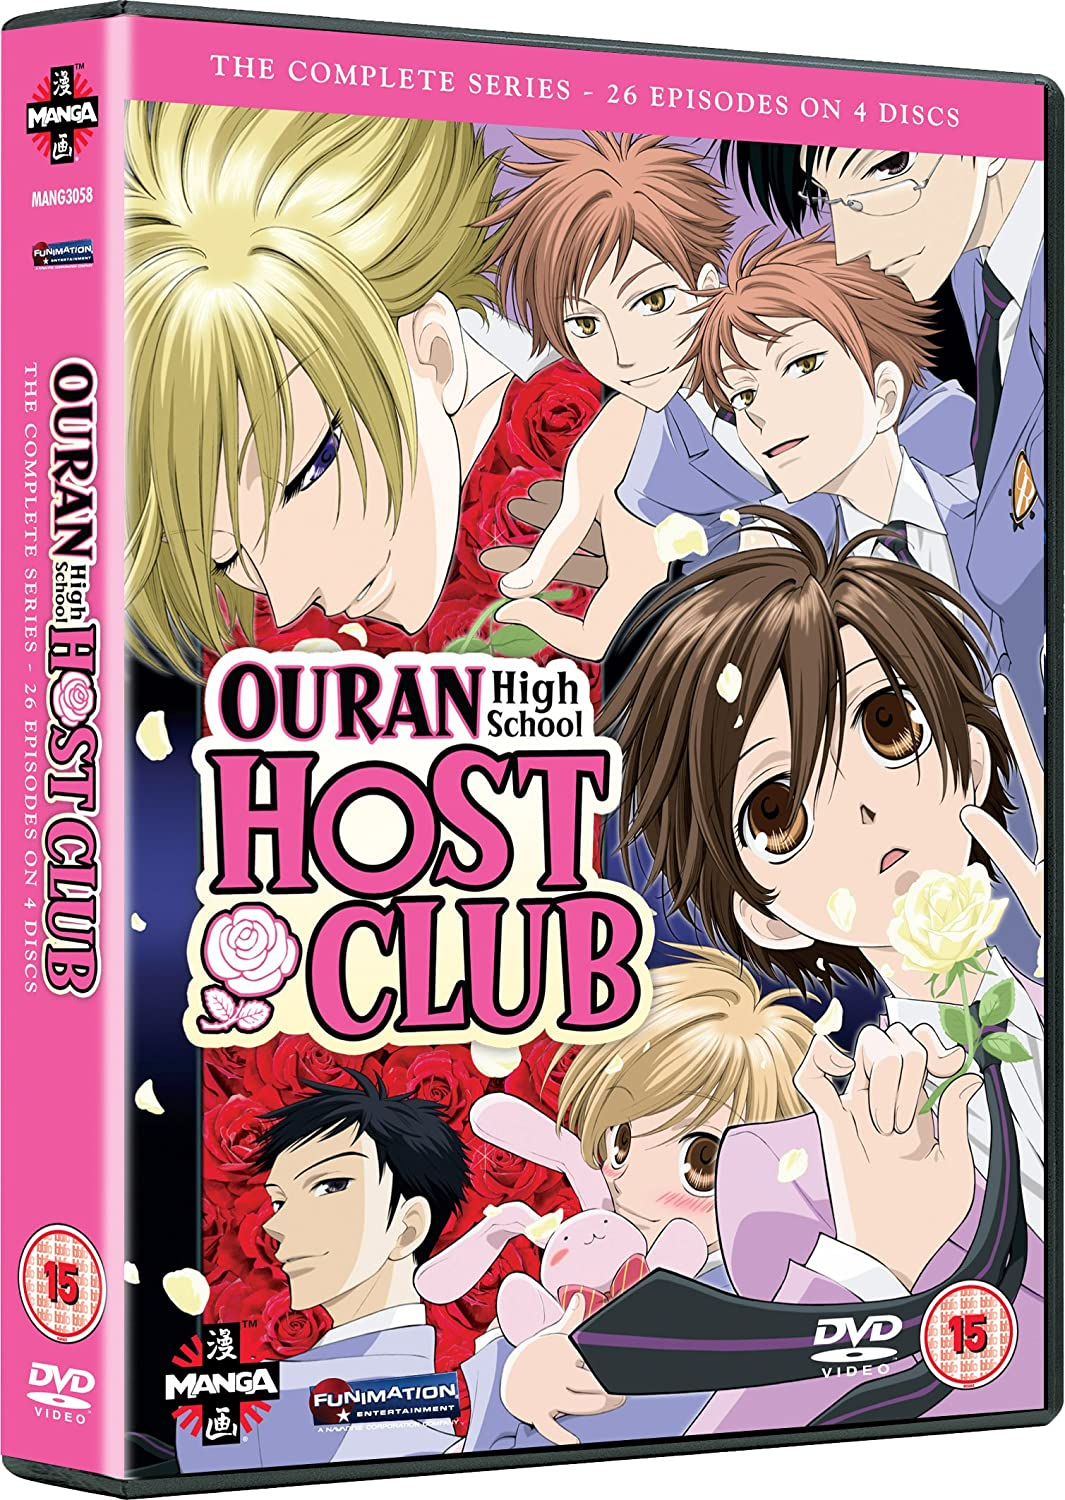 Ouran High School Host Club - Complete Series DVD: Amazon.co.uk ...